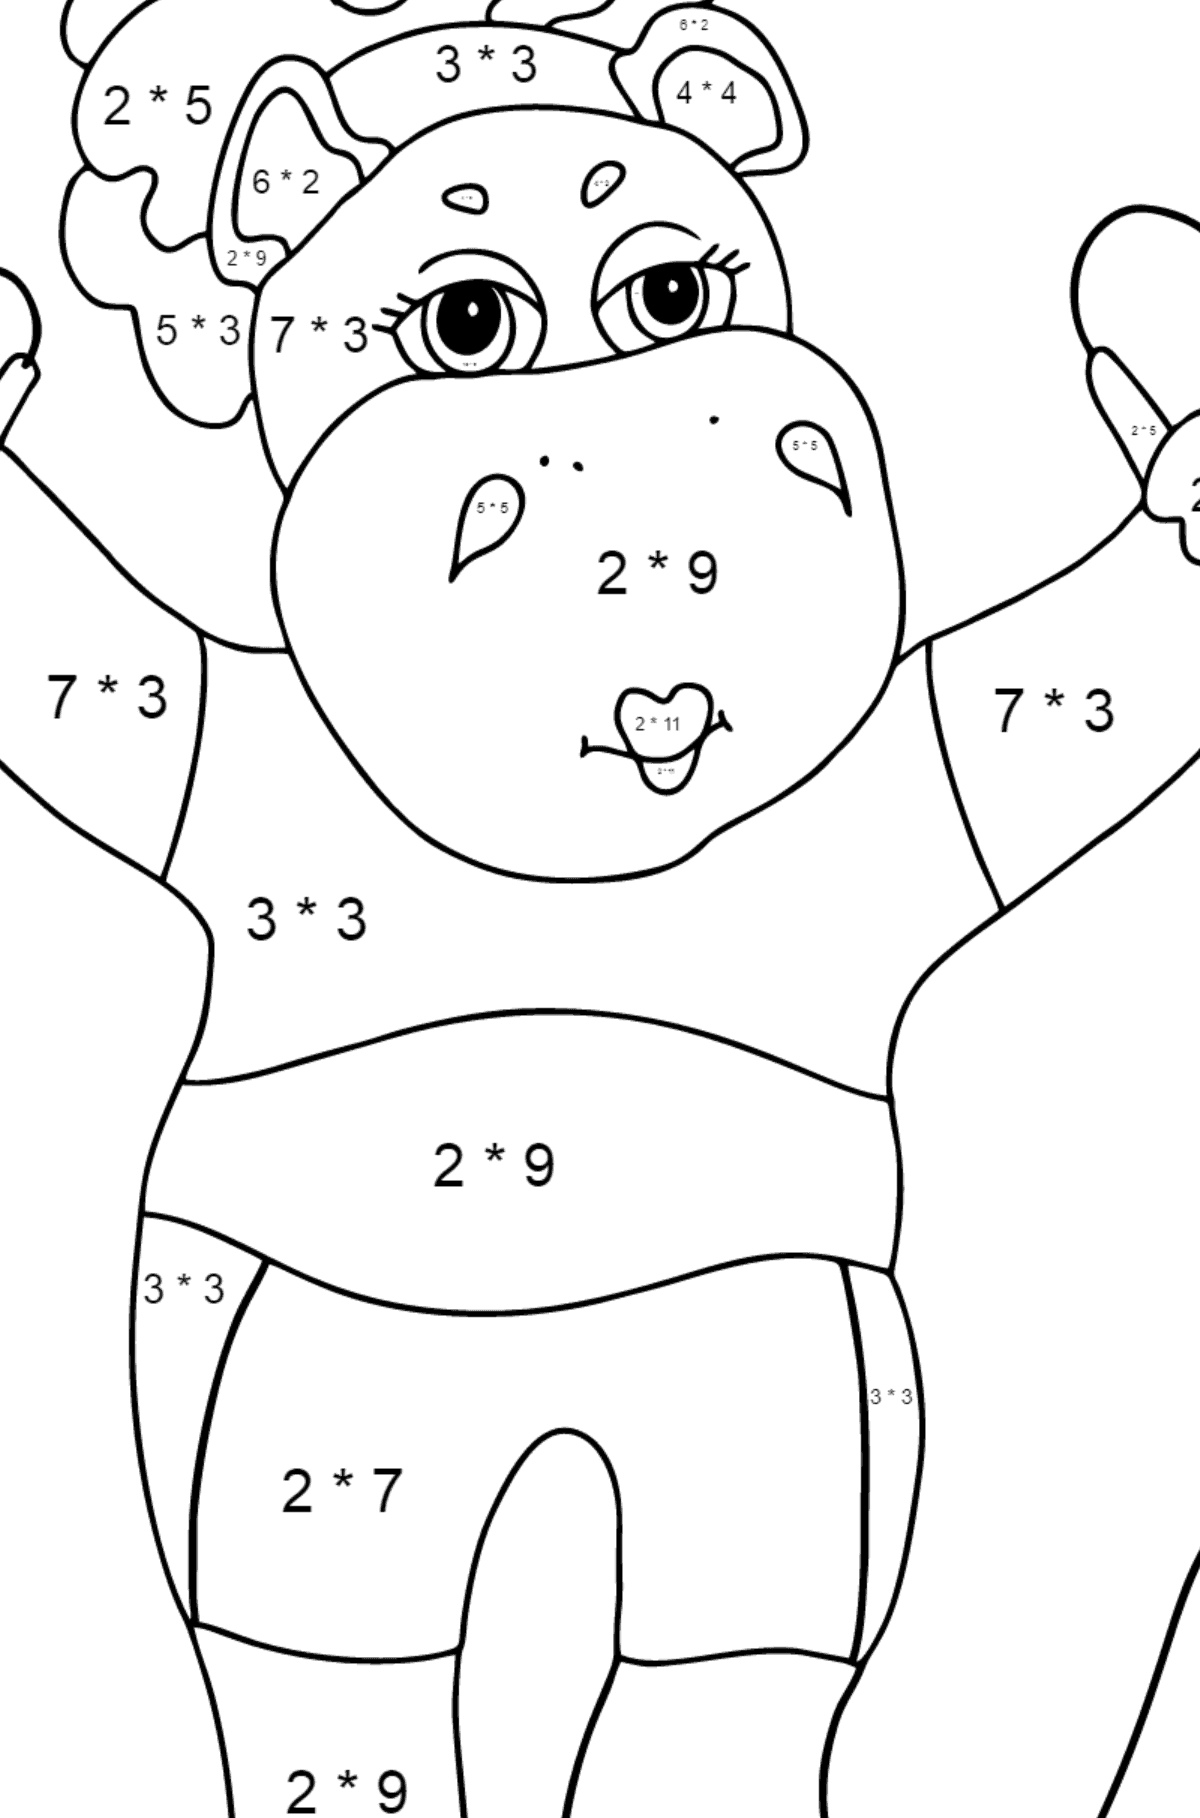 Coloring Page - A Hippo is Jumping on a Rope for Children  - Color by Number Multiplication